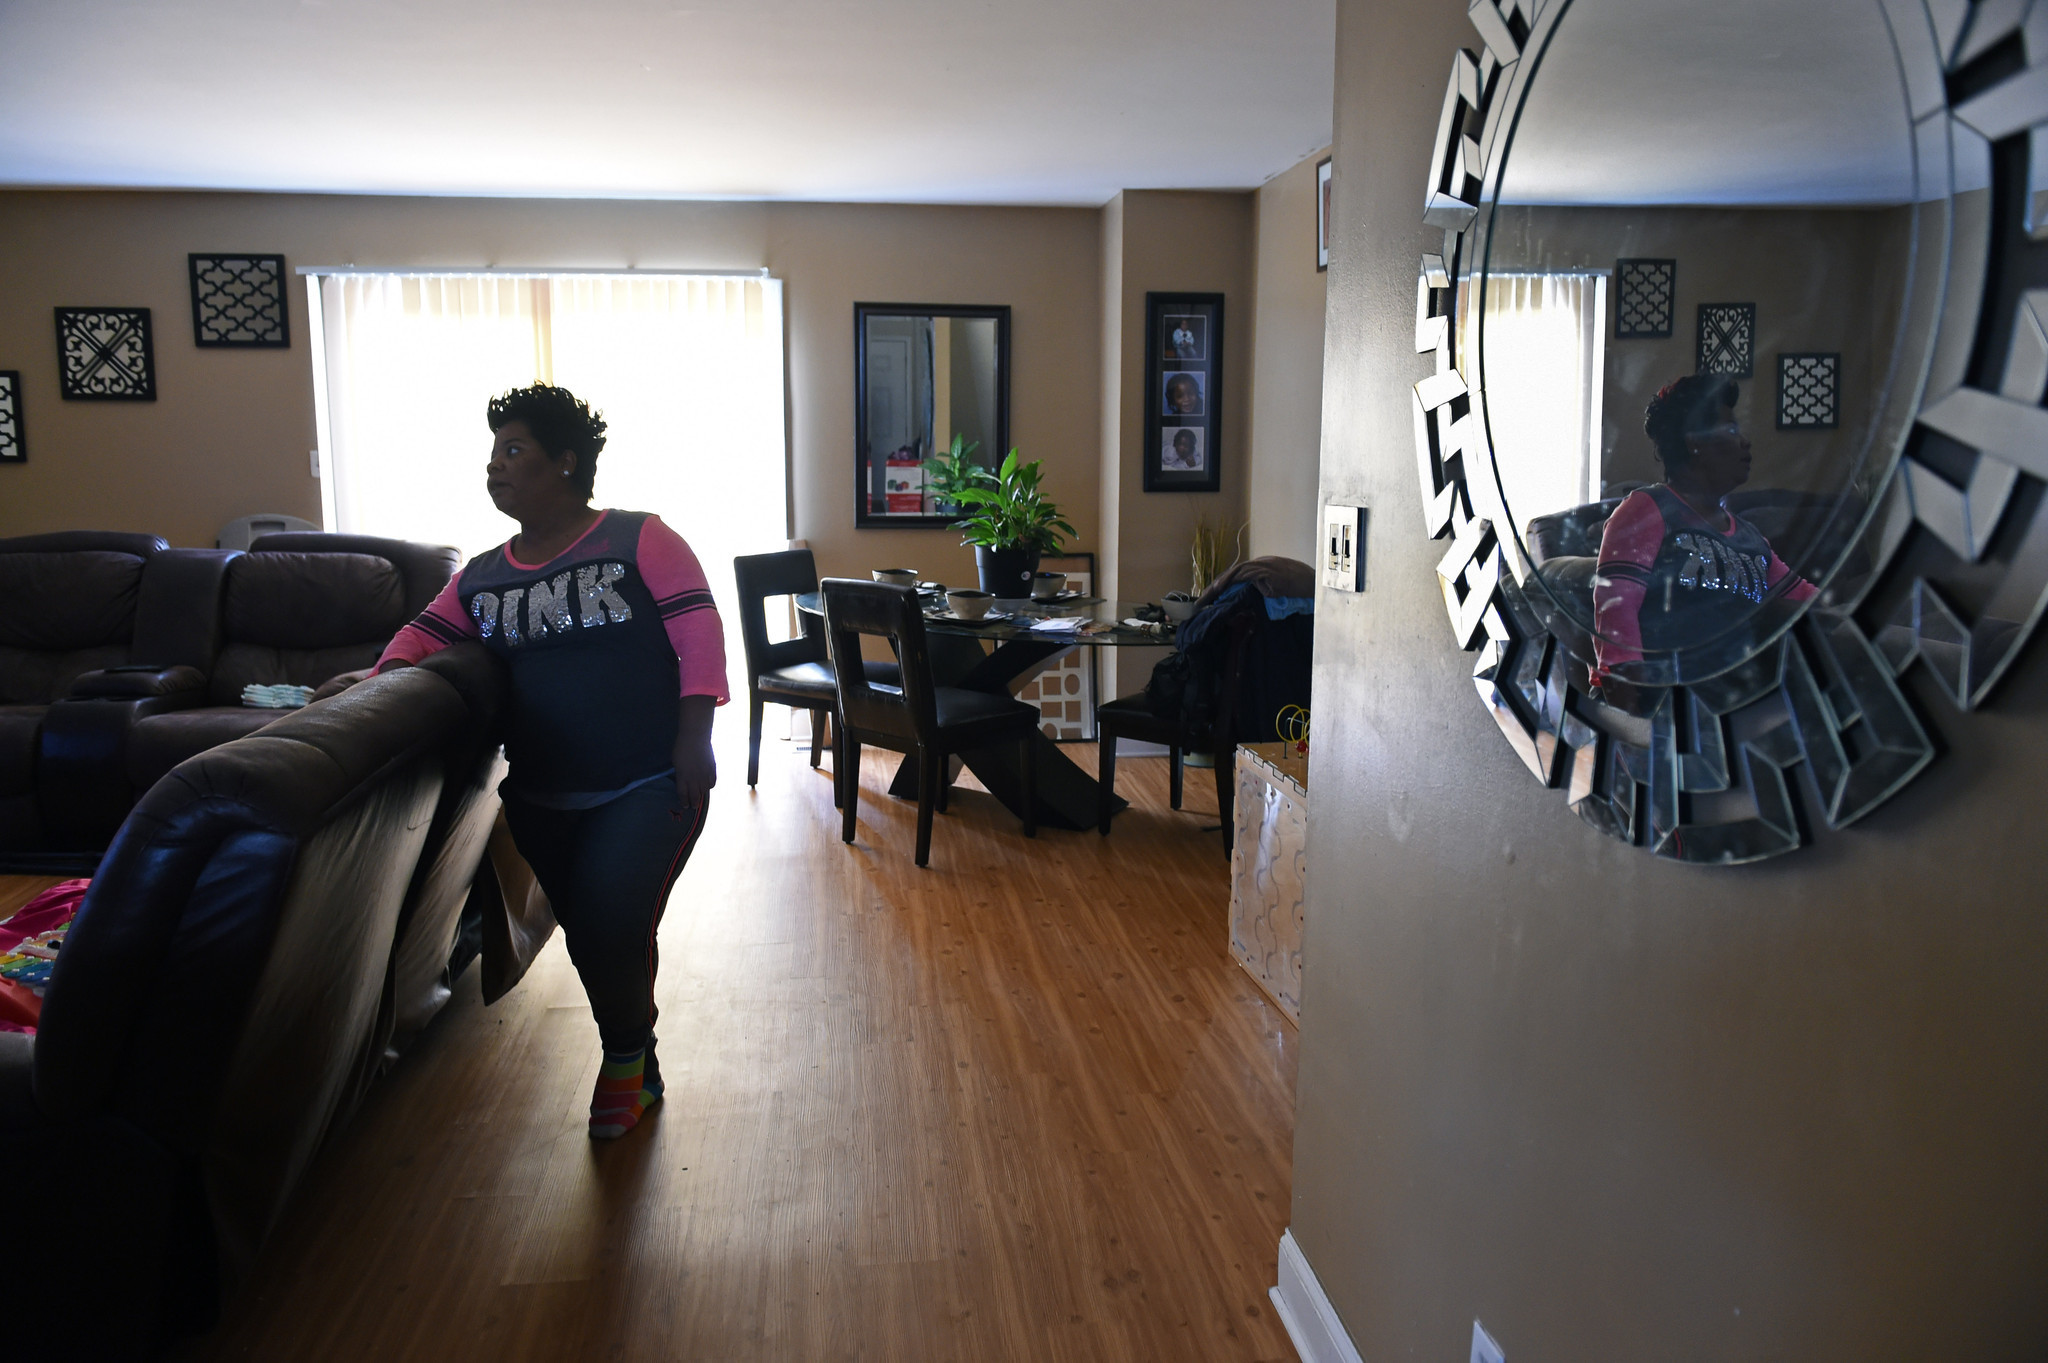 city housing program stirs fears in baltimore county baltimore sun